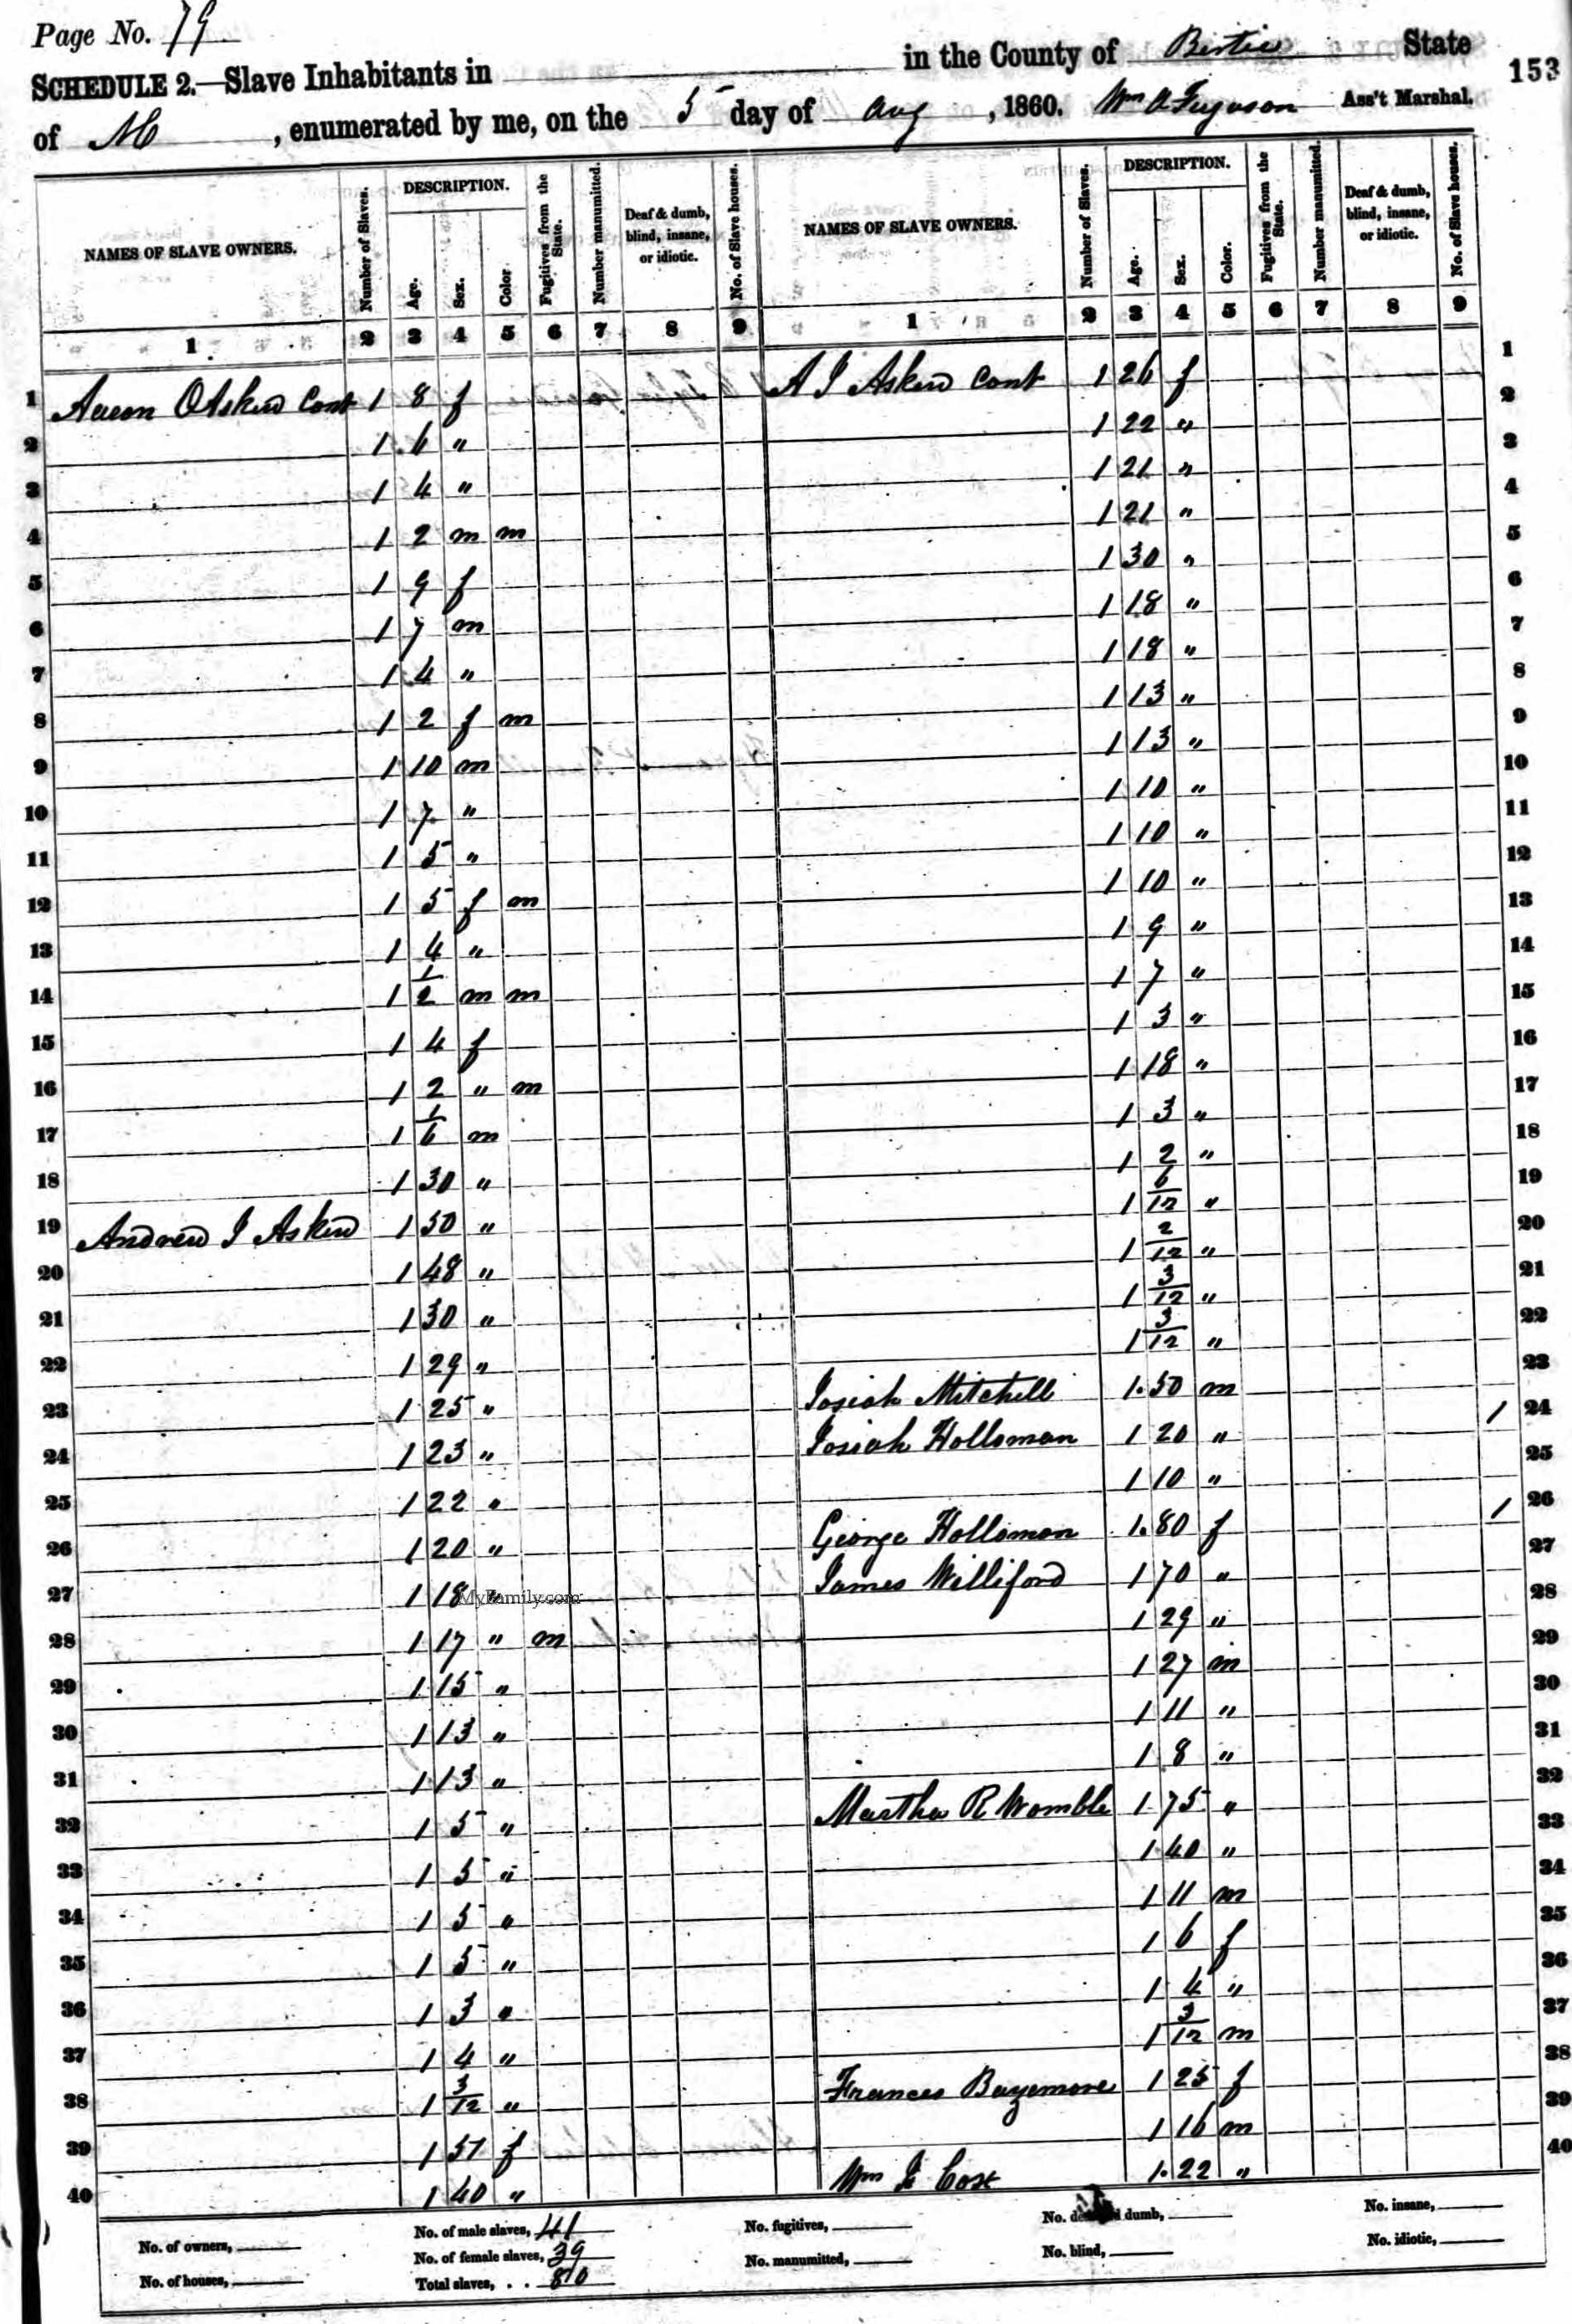 The 1860 Slave Schedule